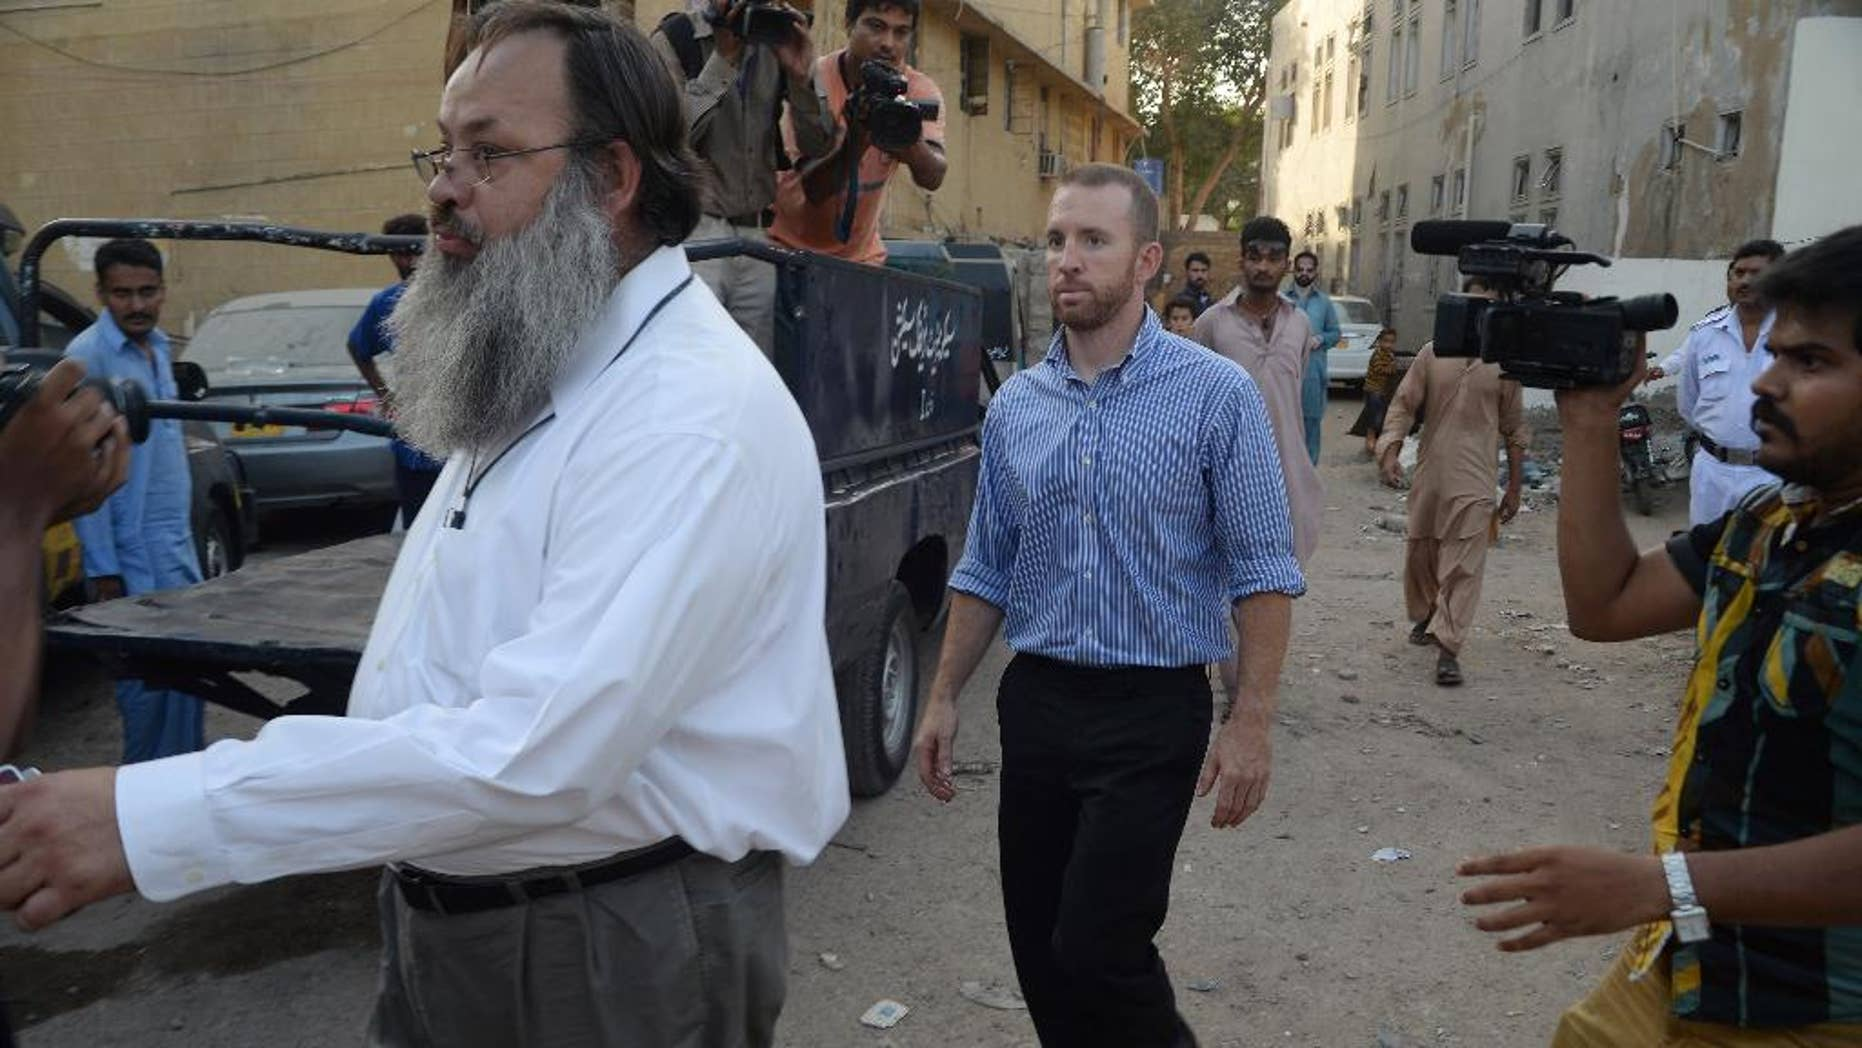 An American national, center, reportedly working for the FBI, leaves a police station in Karachi, Pakistan, Thursday, May 8, 2014. Pakistan released an FBI agent on bail Thursday after three days in custody, officials said, a move that is likely to prevent the situation from escalating into a diplomatic spat. The American man was detained after airport authorities found him carrying ammunition and three knives Monday as he was about to board a flight for the Pakistani capital, Islamabad.(AP Photo/Mohammad Khalil)